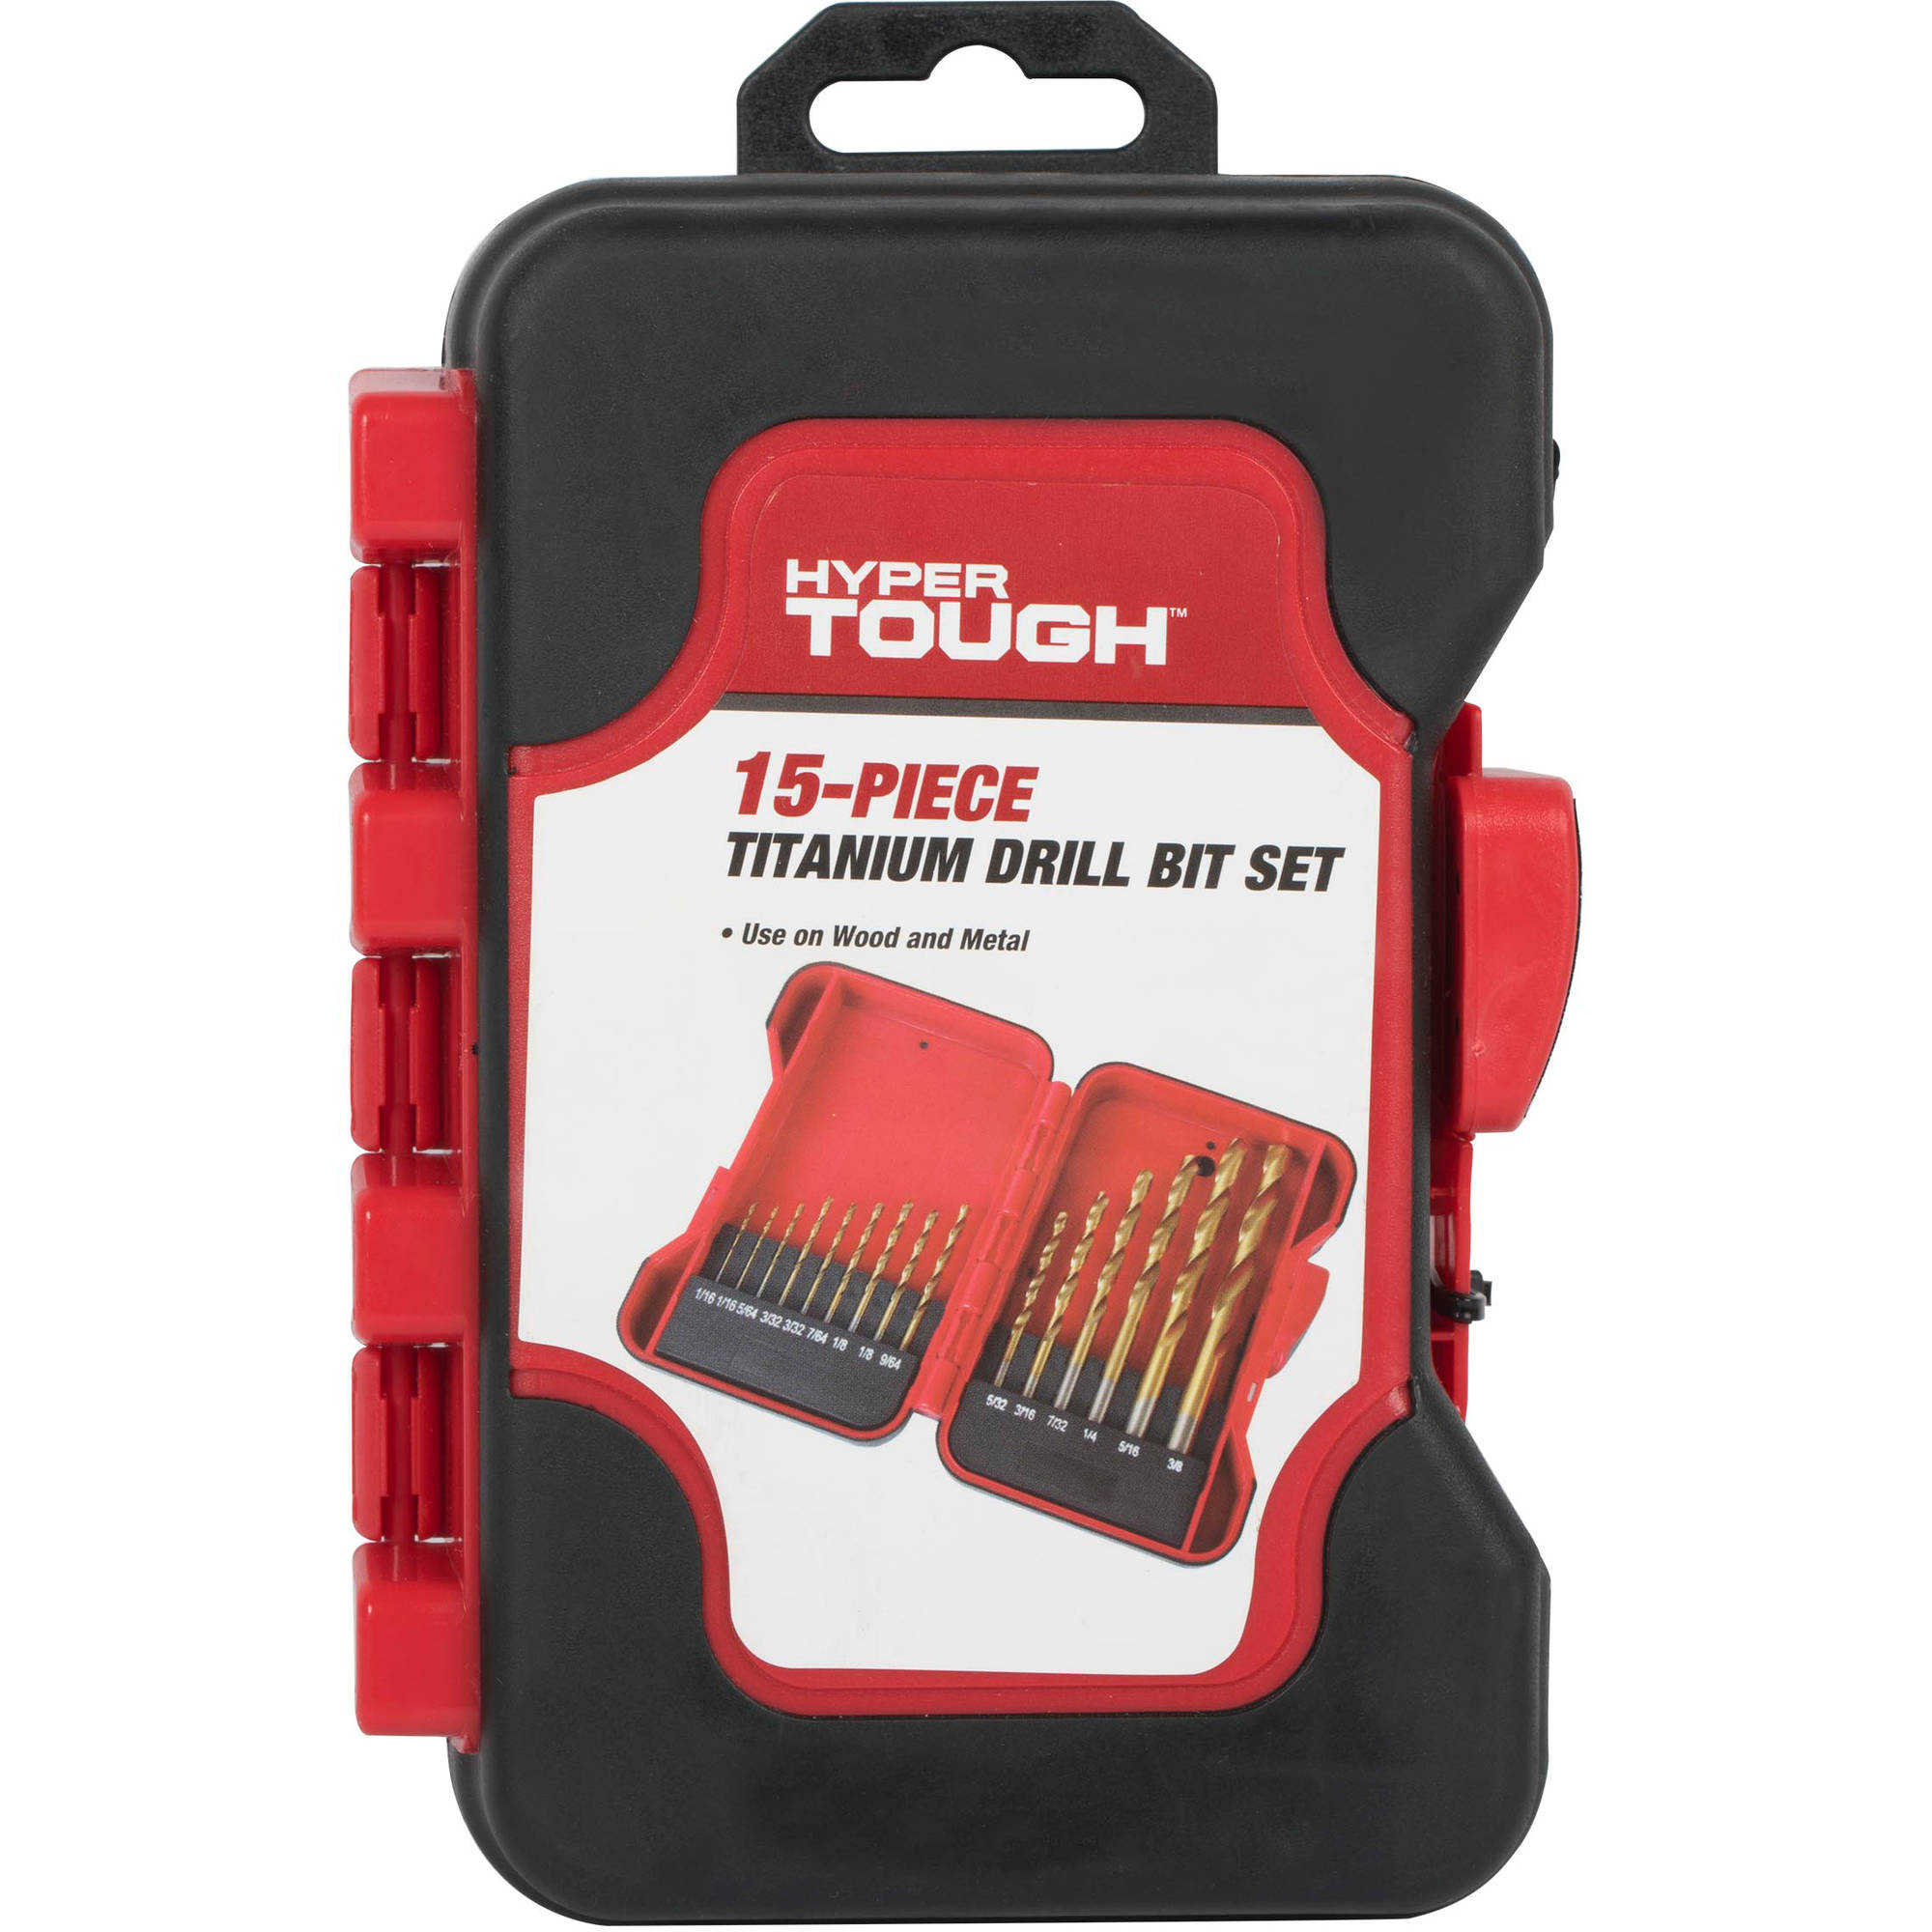 Hyper Tough 3431 15-Piece High Speed Drill Bit Set